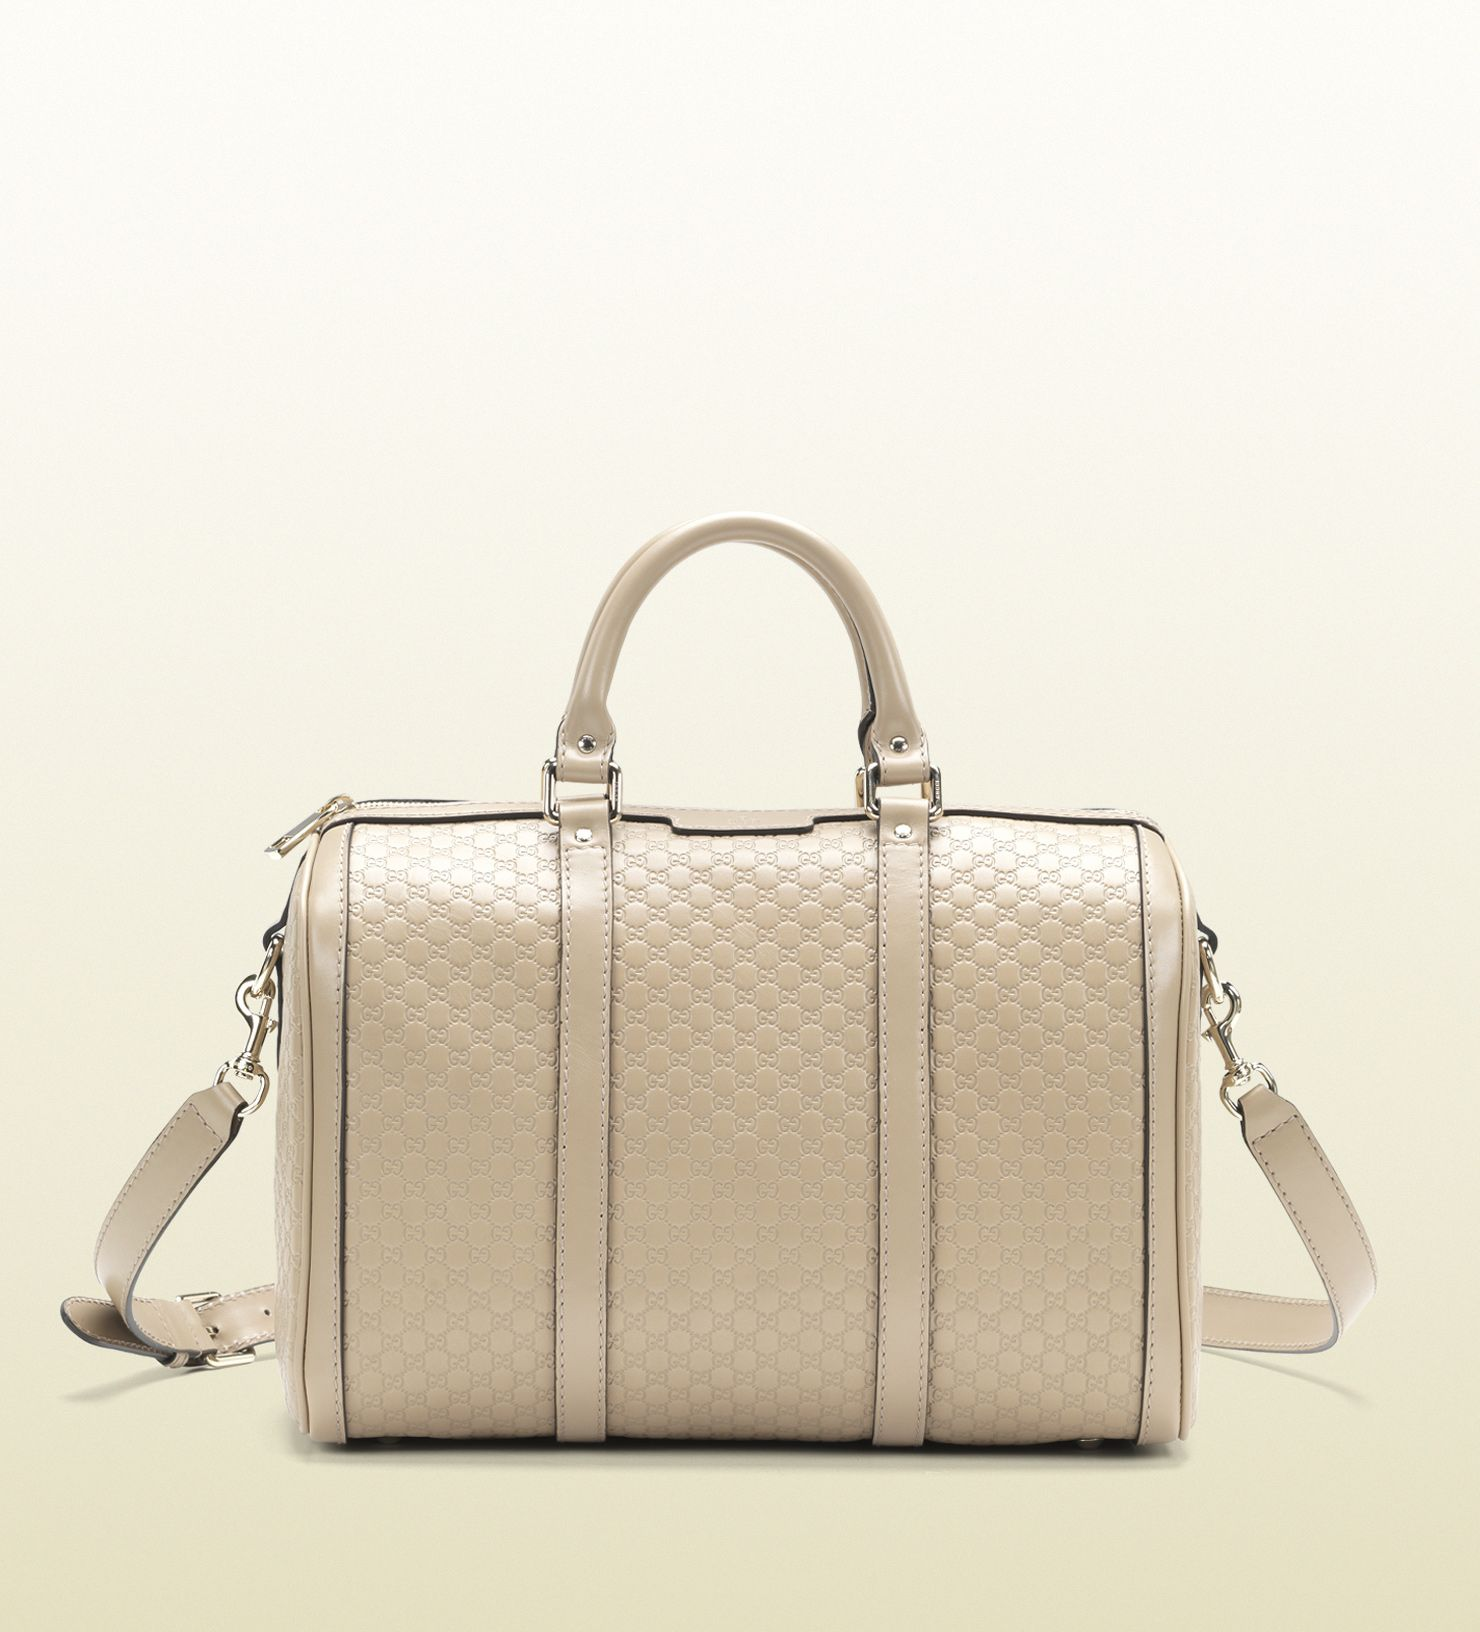 Gucci Vintage Beige Boston Bag 25 Of The Retail Price Will Be Donated To